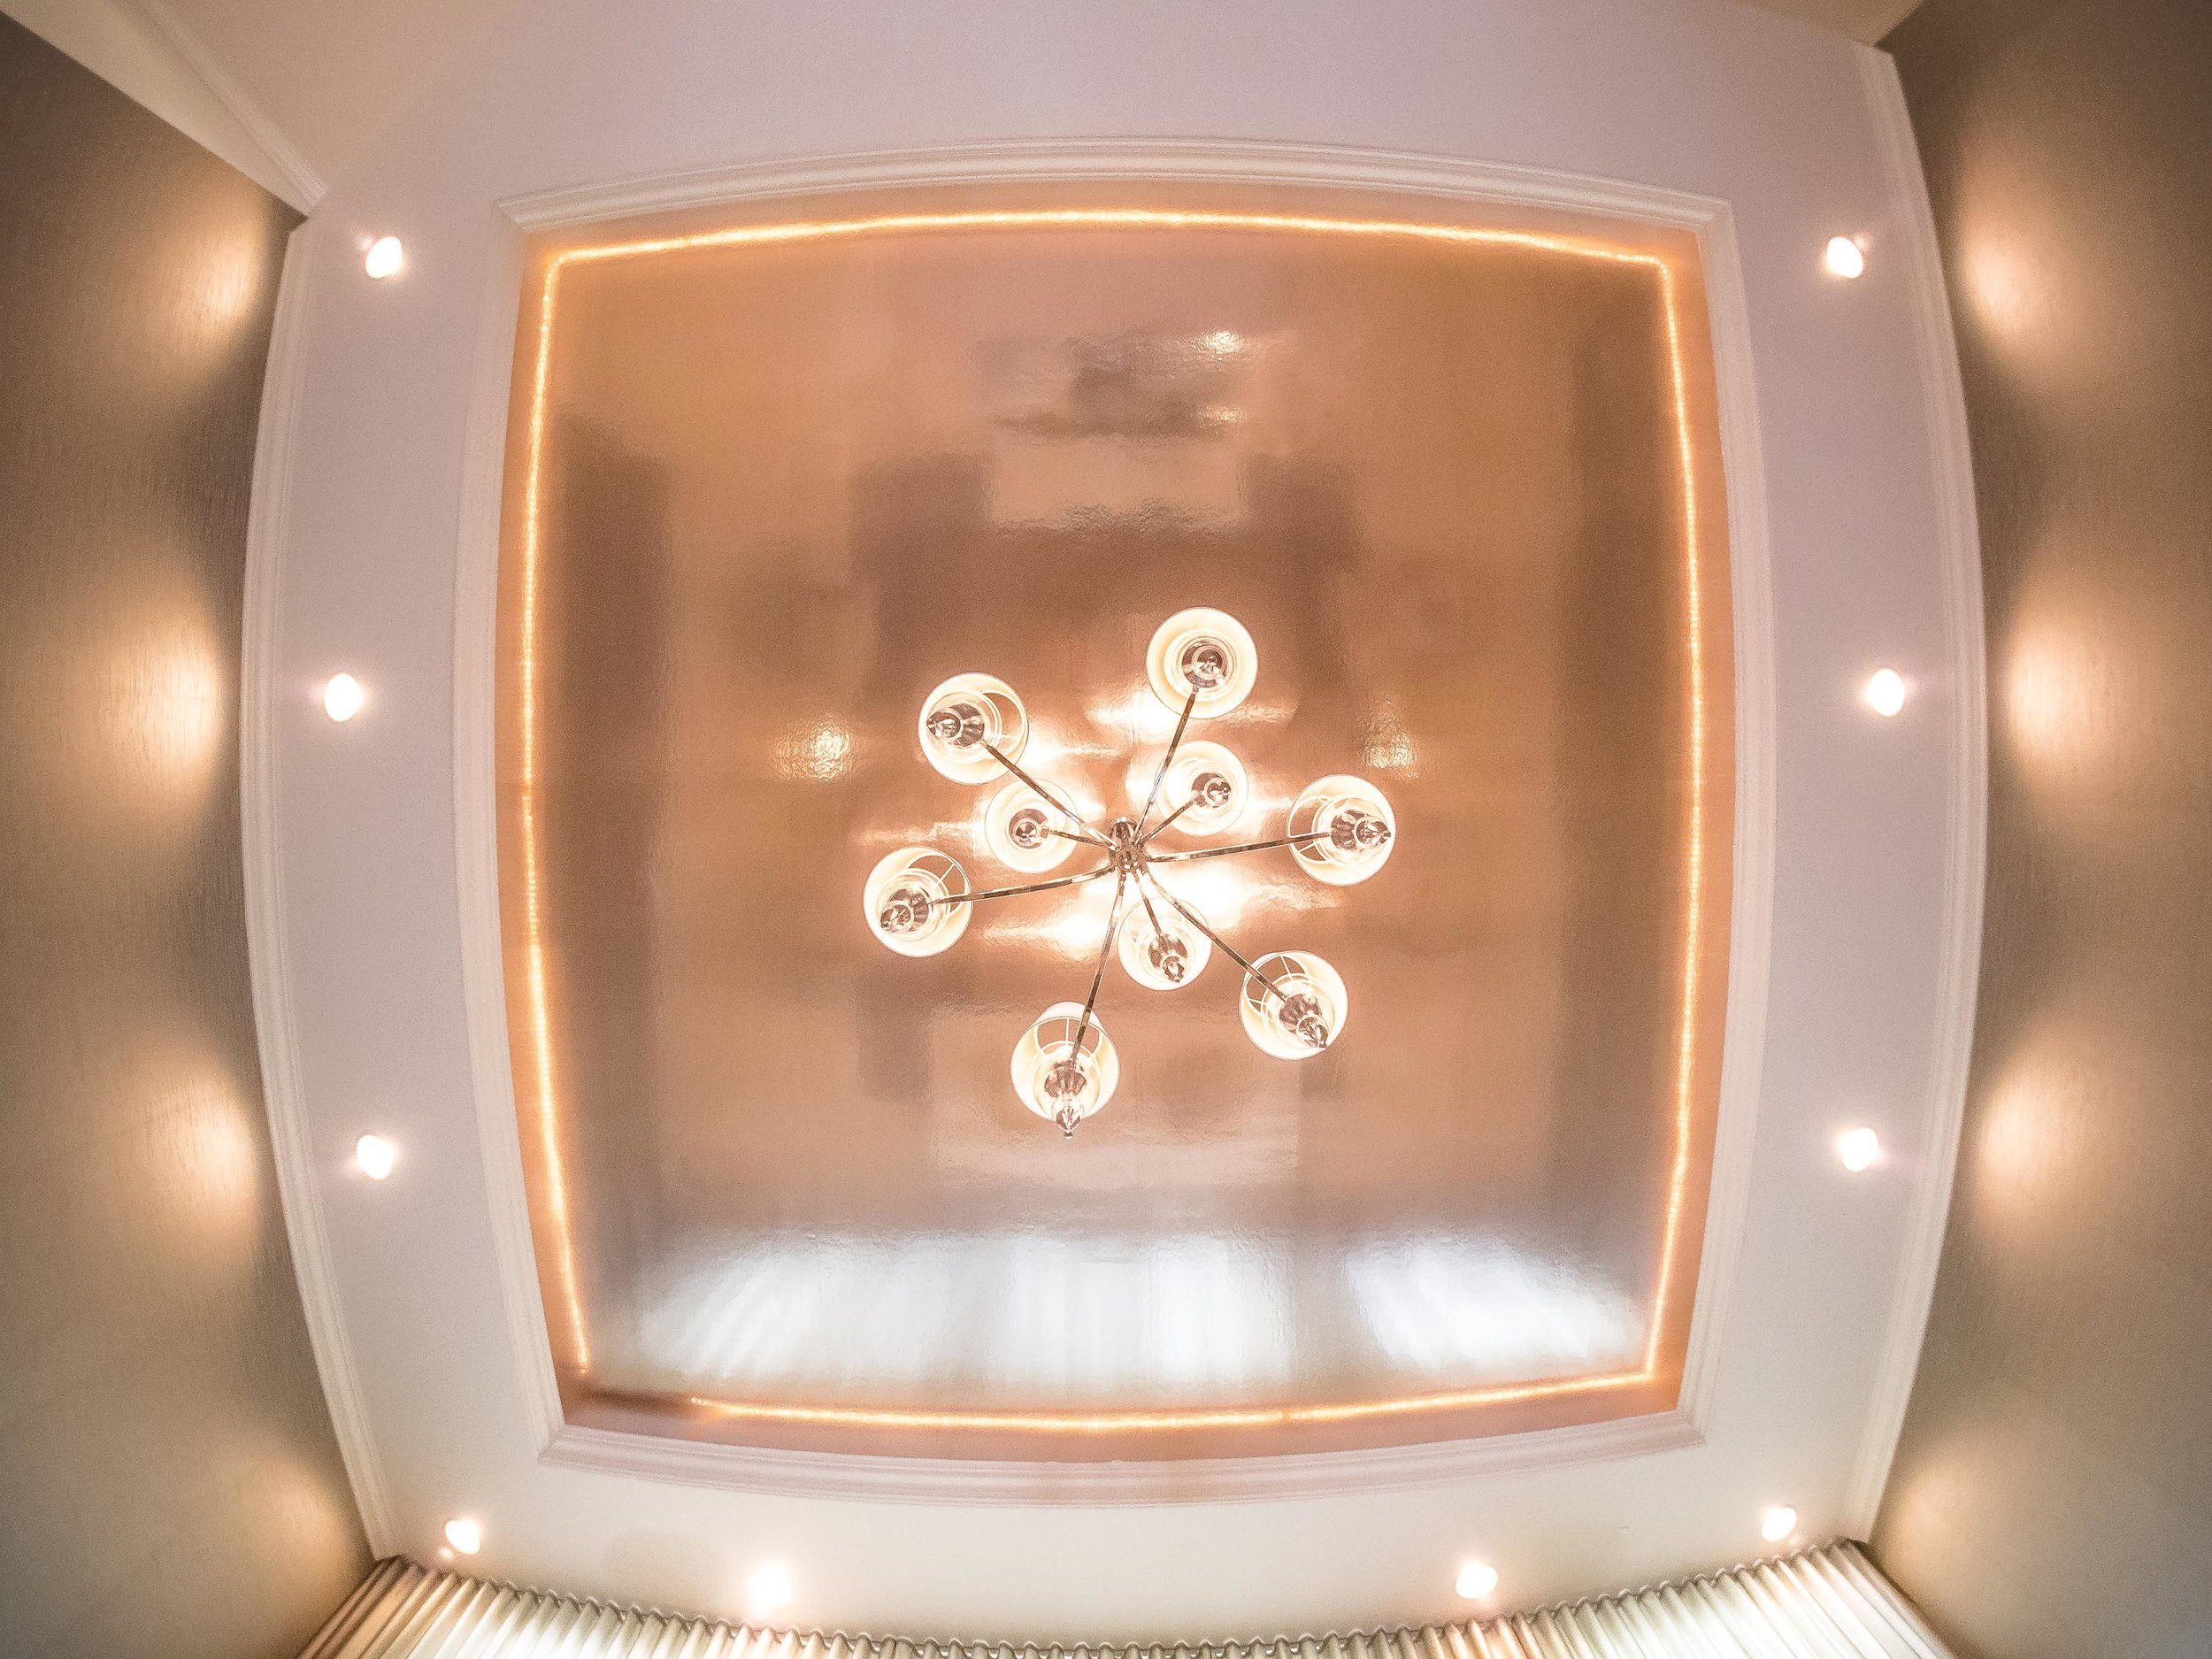 Ceiling image with lights and custom ceiling lamps